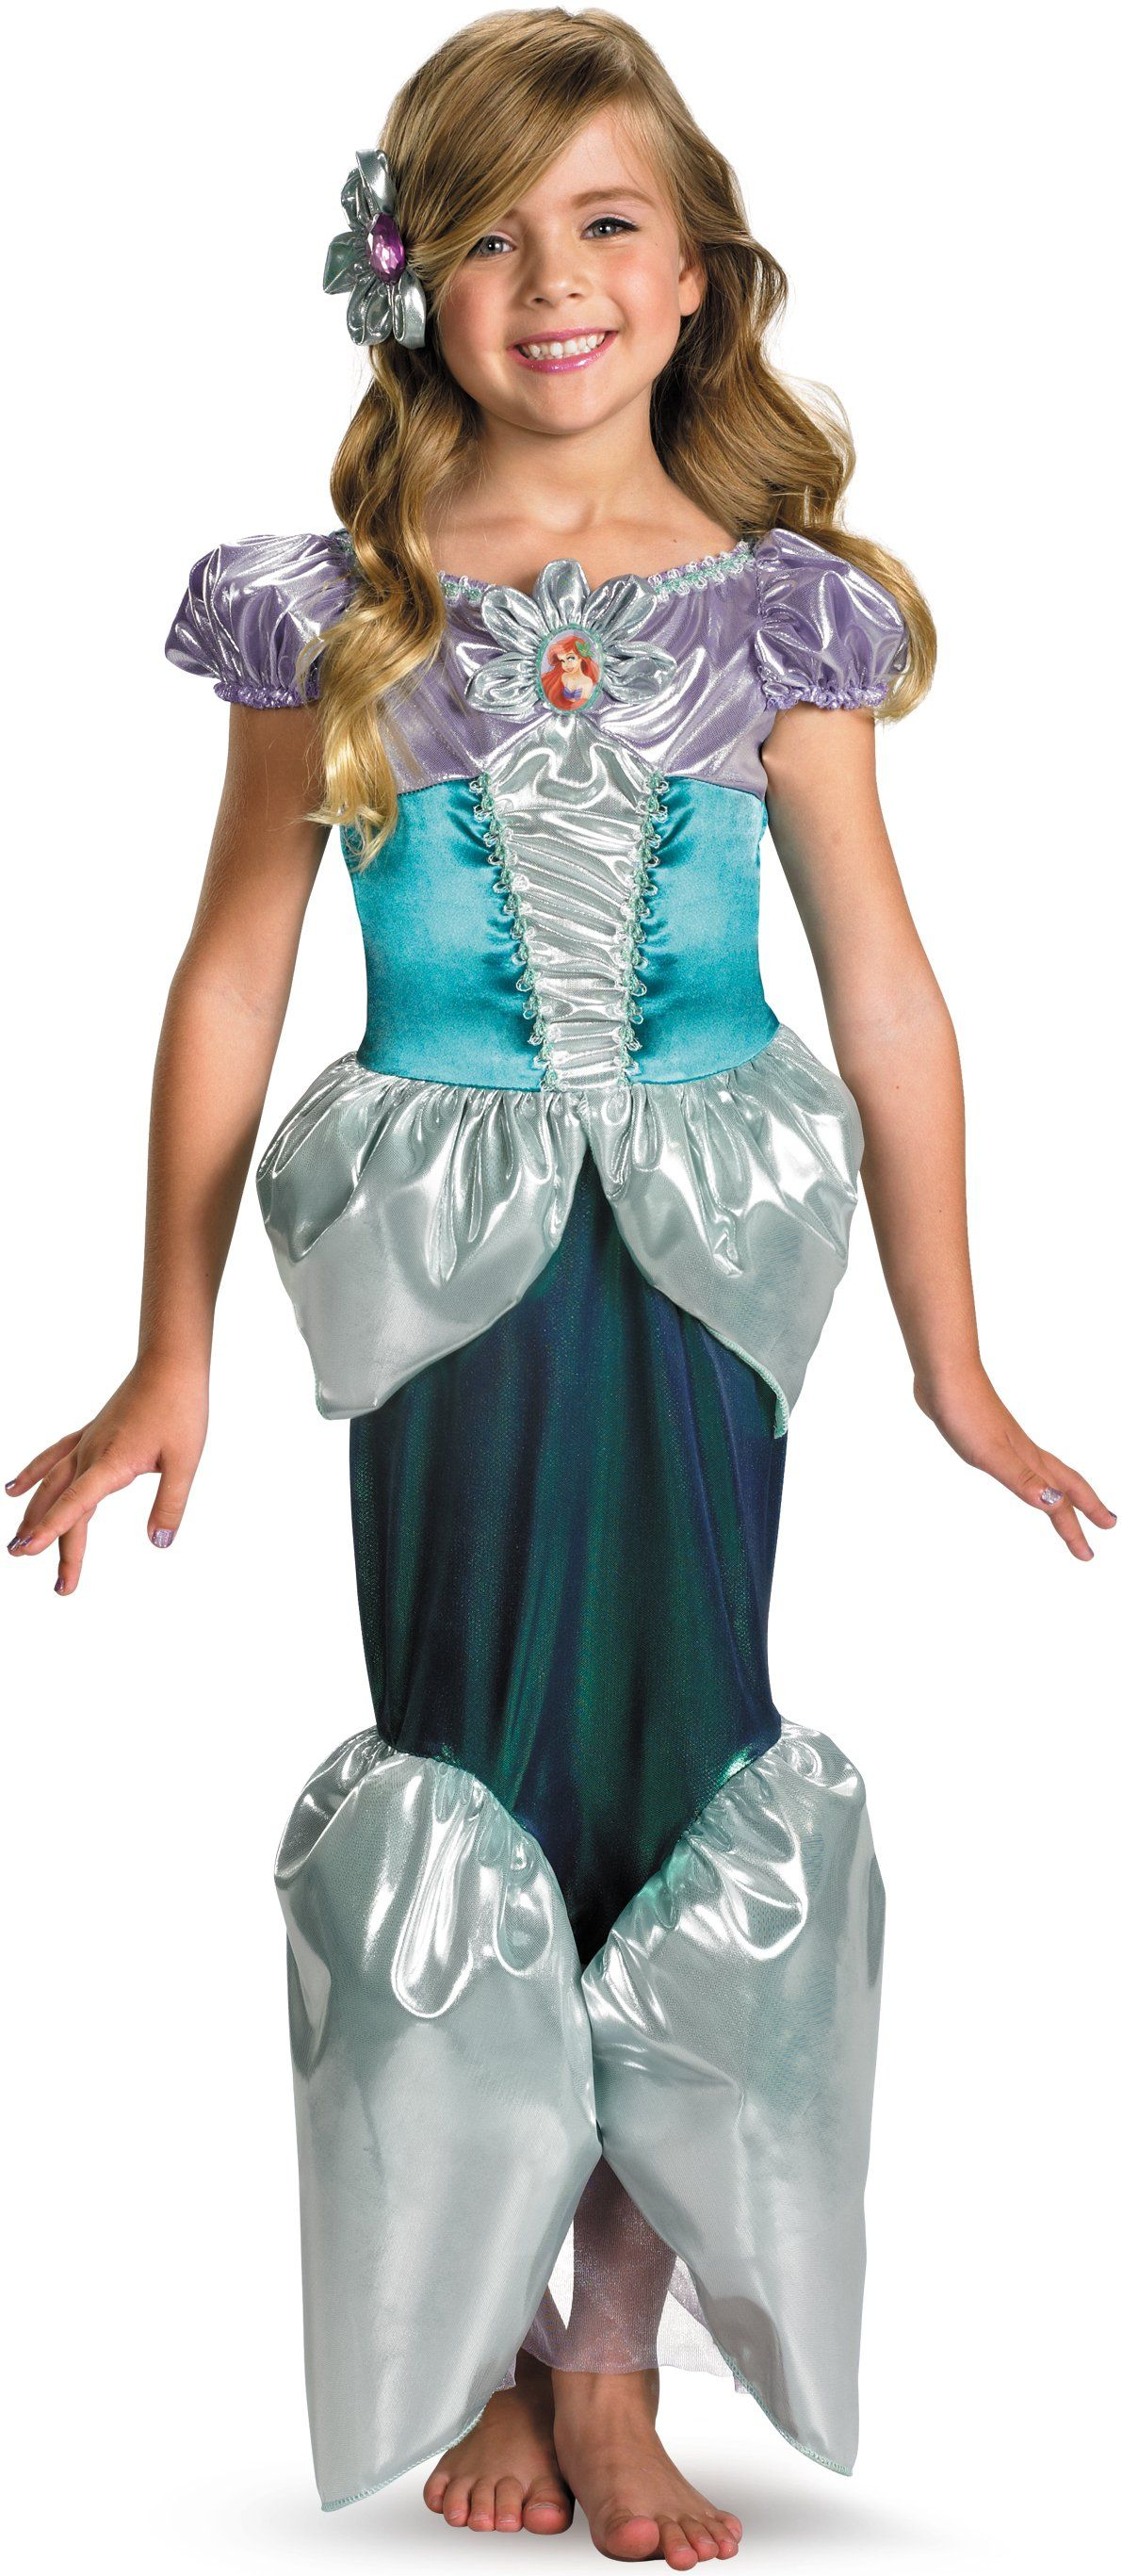 Disney Princess - Ariel Lame Deluxe Toddler / Child Costume | Disney ...